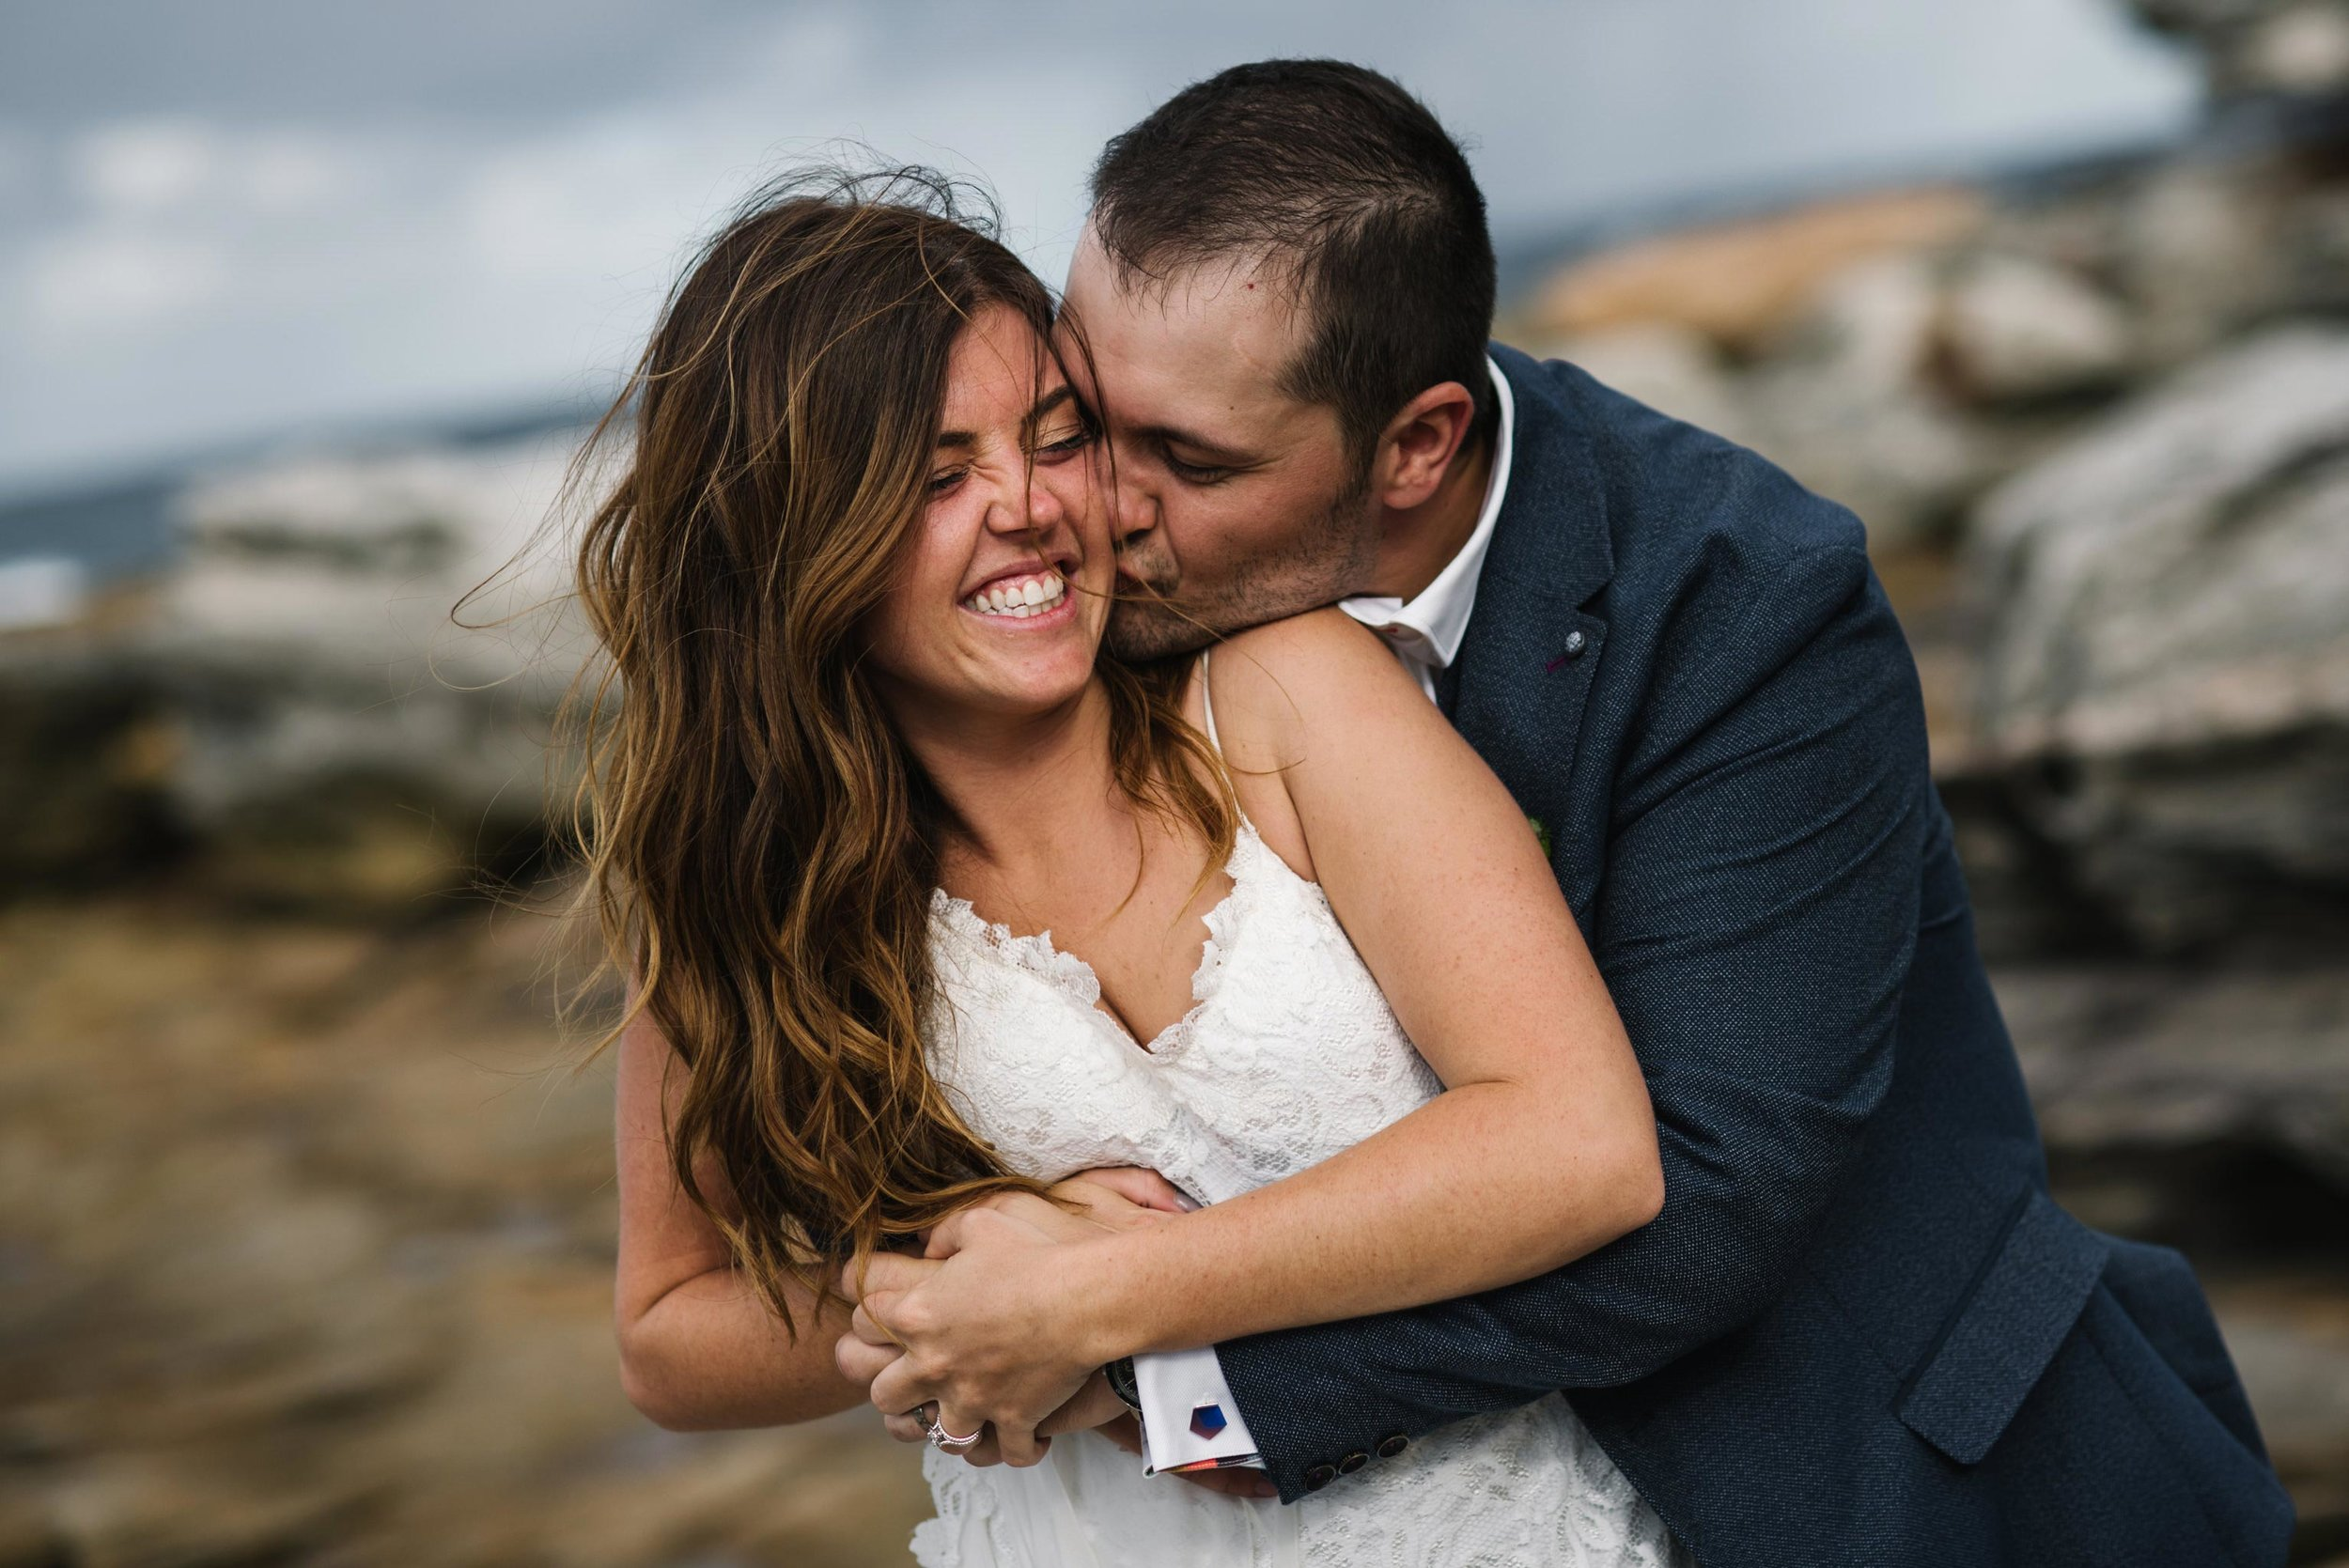 Bride and groom cuddling and smiling